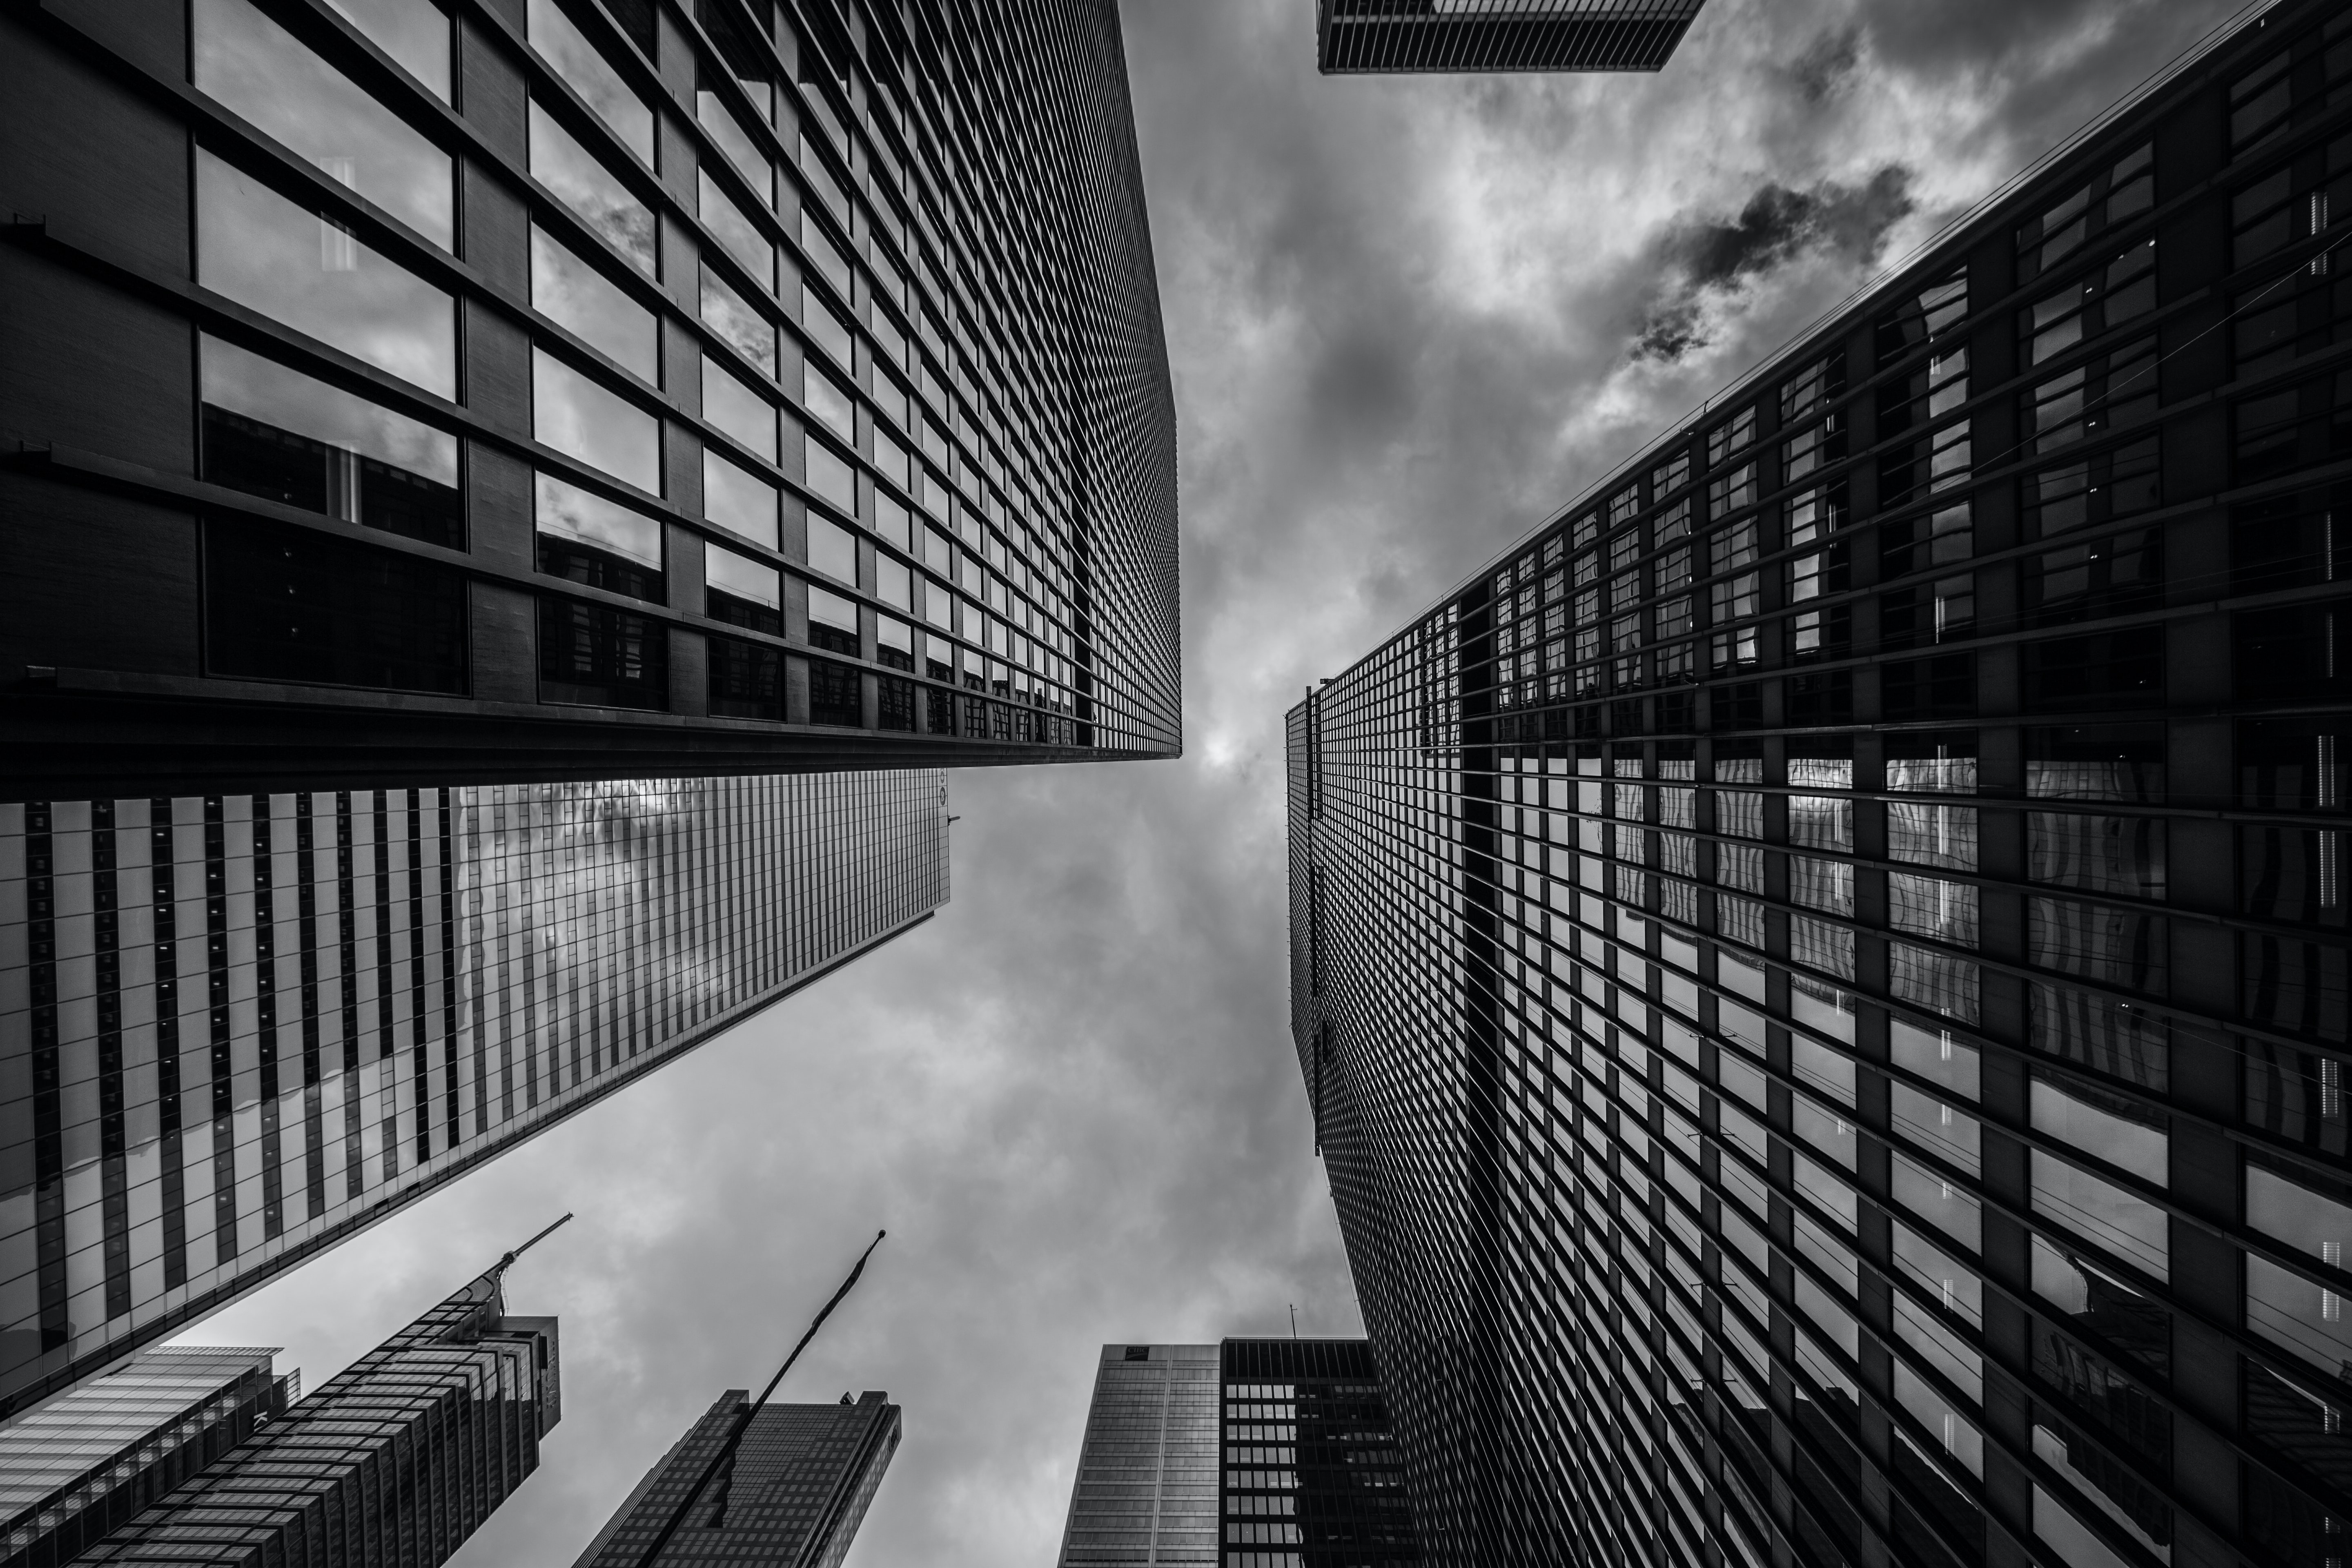 A black-and-white shot of white clouds above towering high-rises in a city